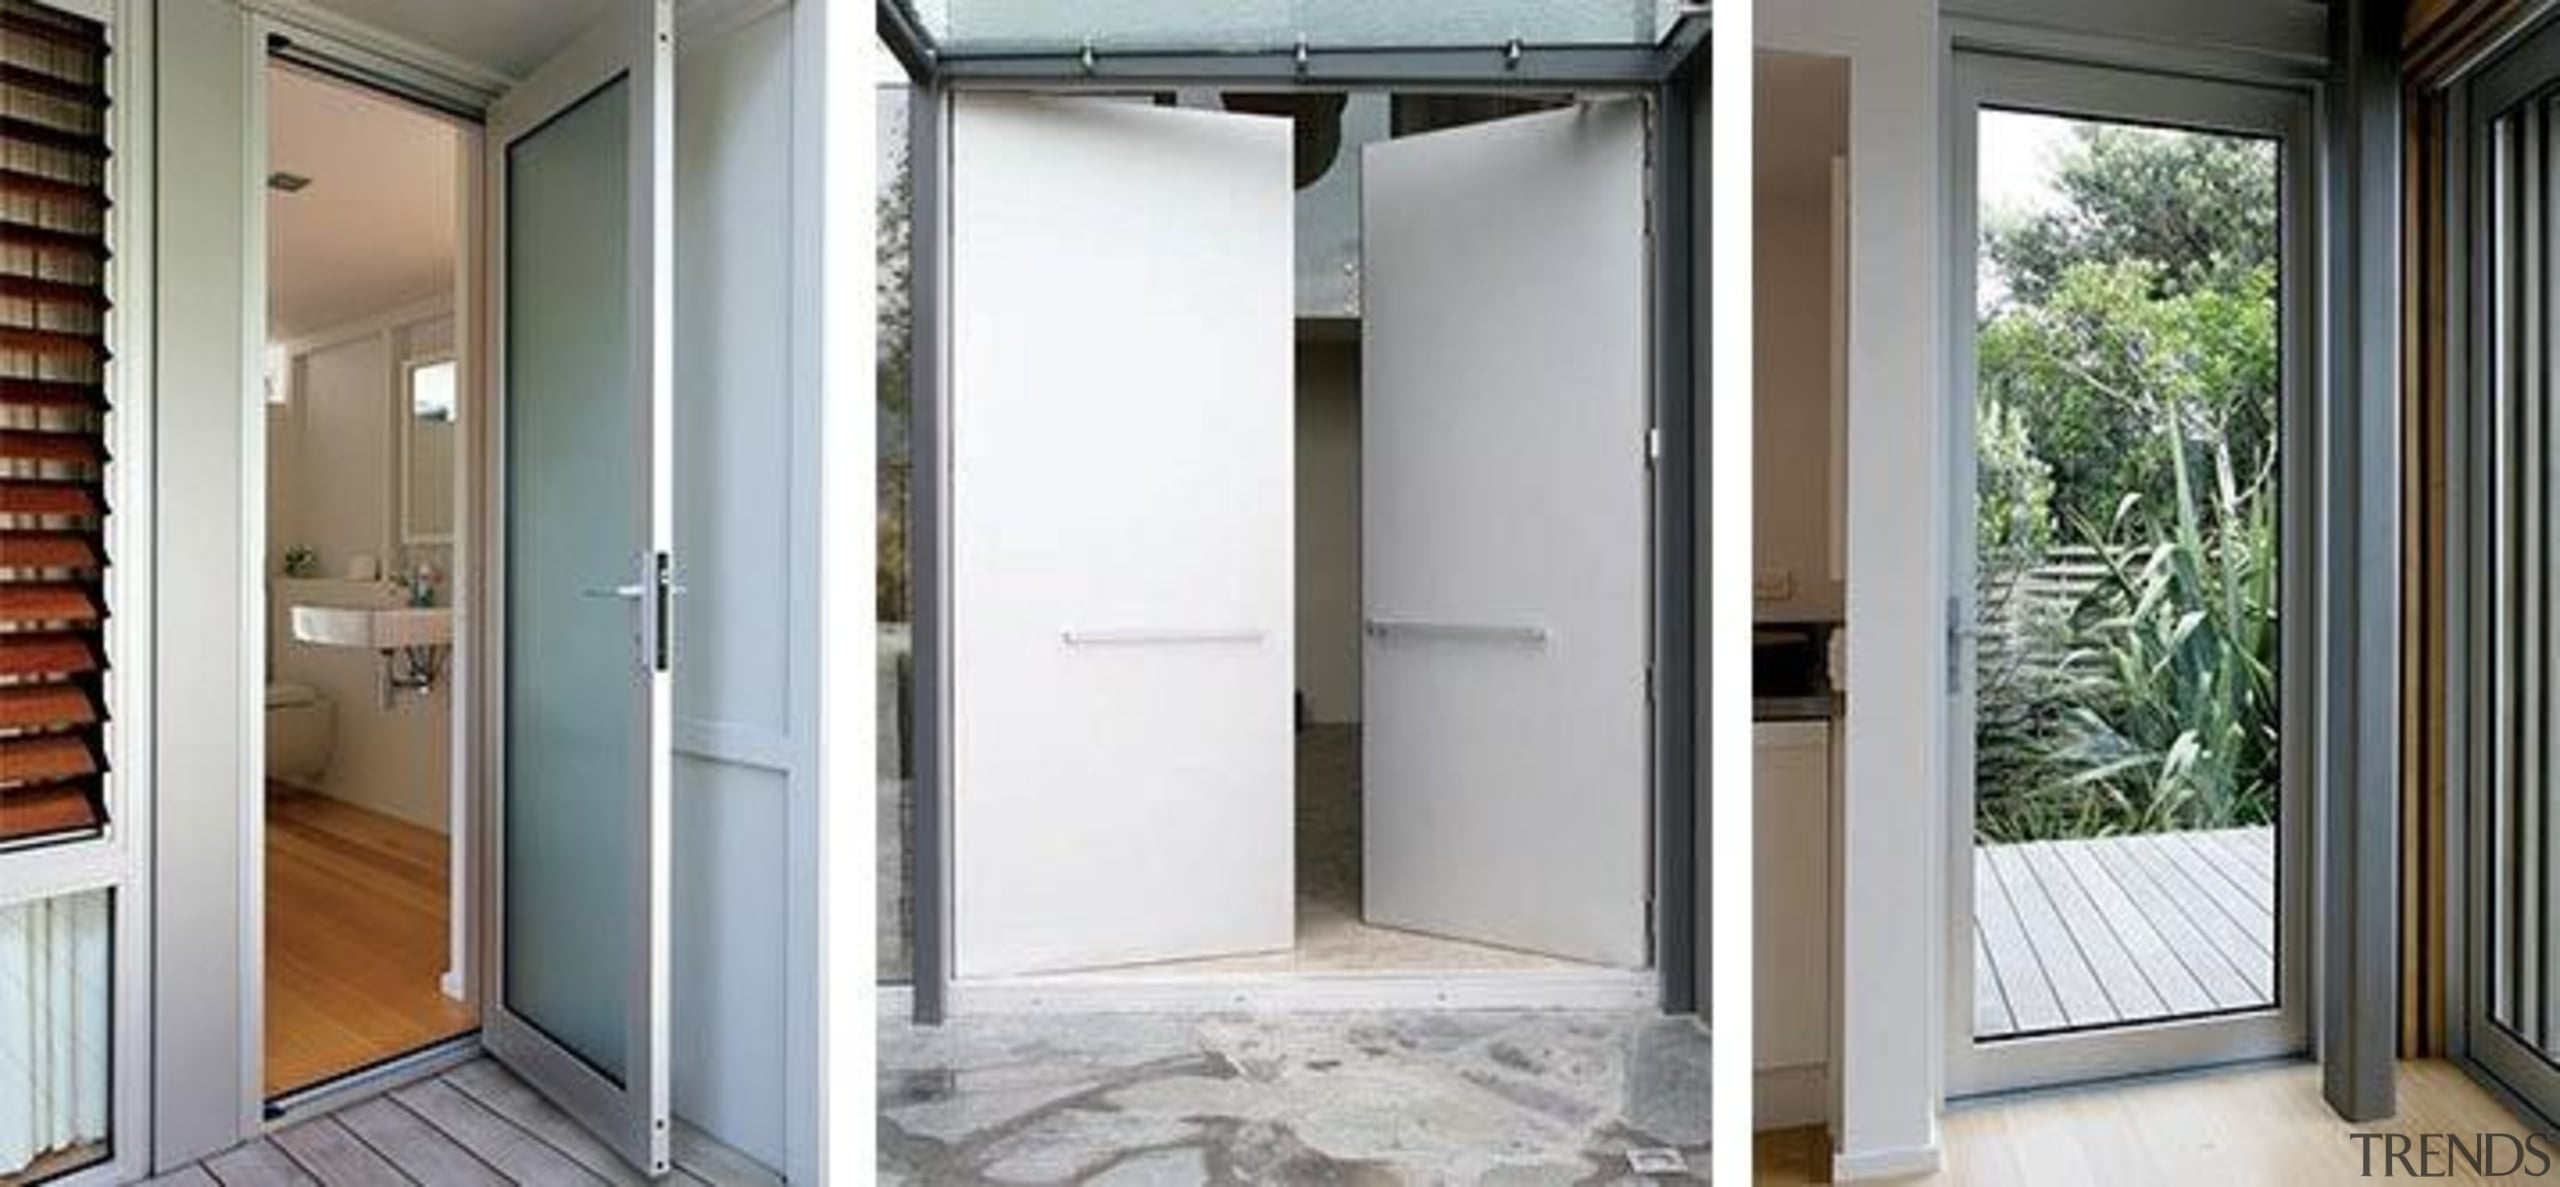 Our hinged doors have square-edge stiles and wide door, home, property, real estate, window, white, gray